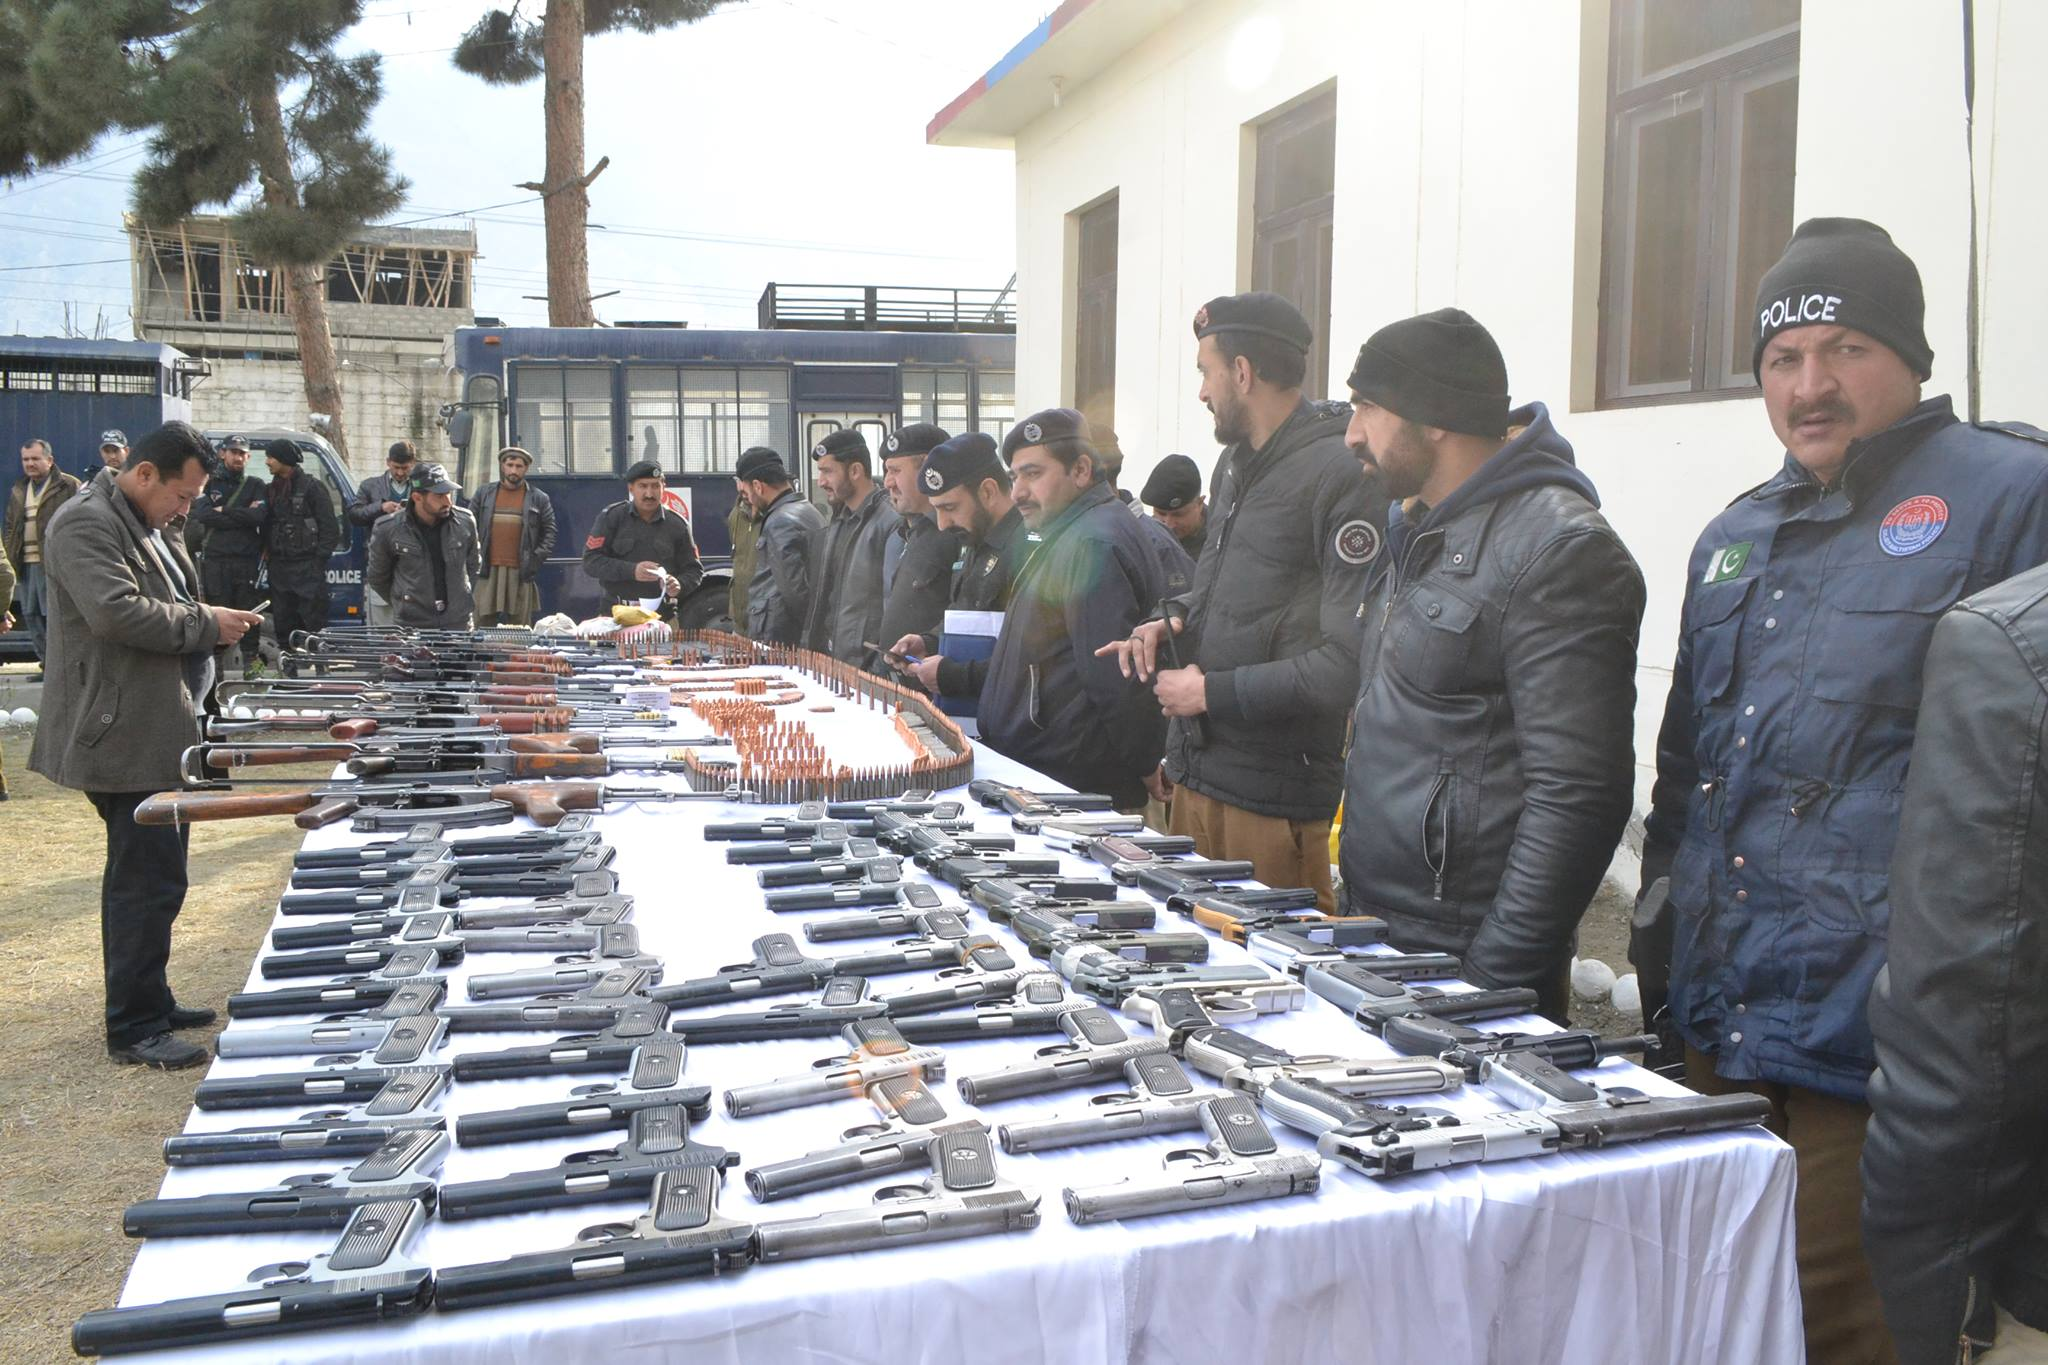 Gilgit Police Foils Terrorism Plot: Huge Cache Of Arms & Ammunition Recovered From Car